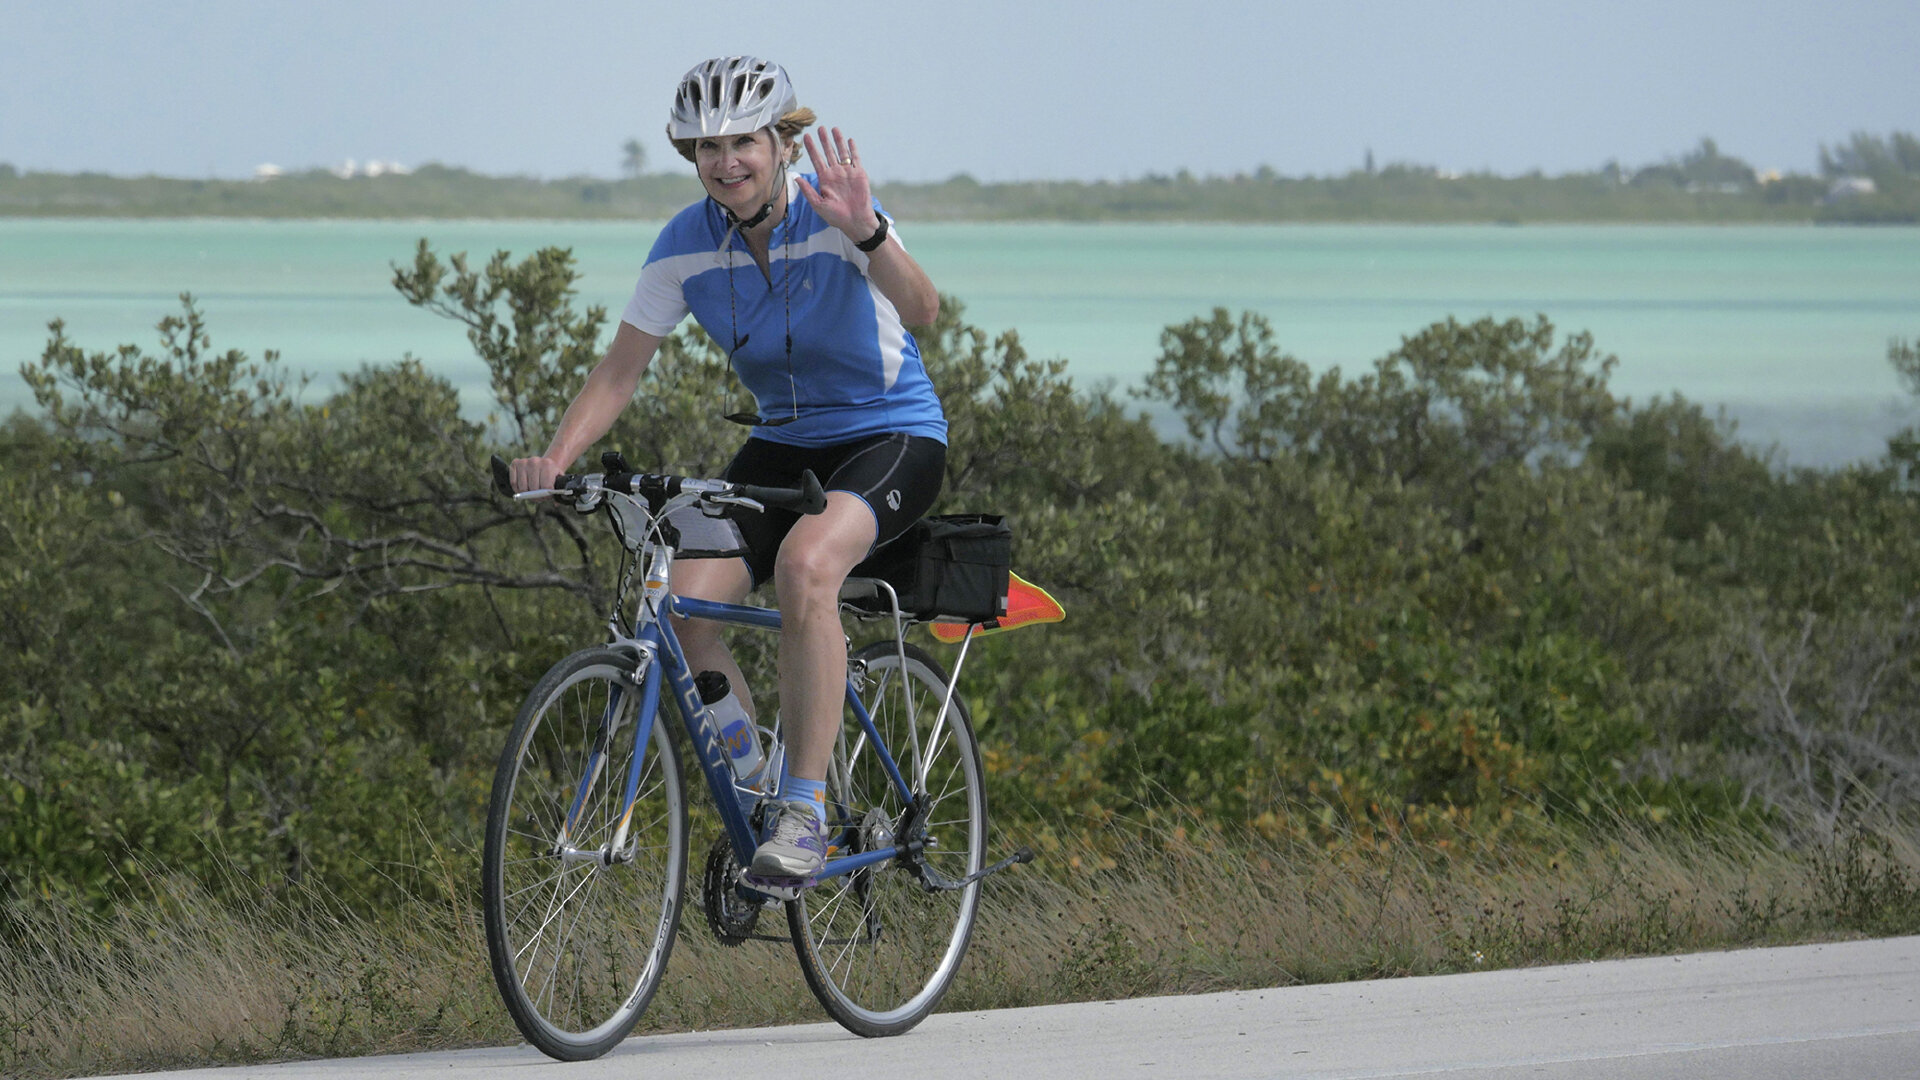 Bicyclist waves on bike ride to Florida Keys